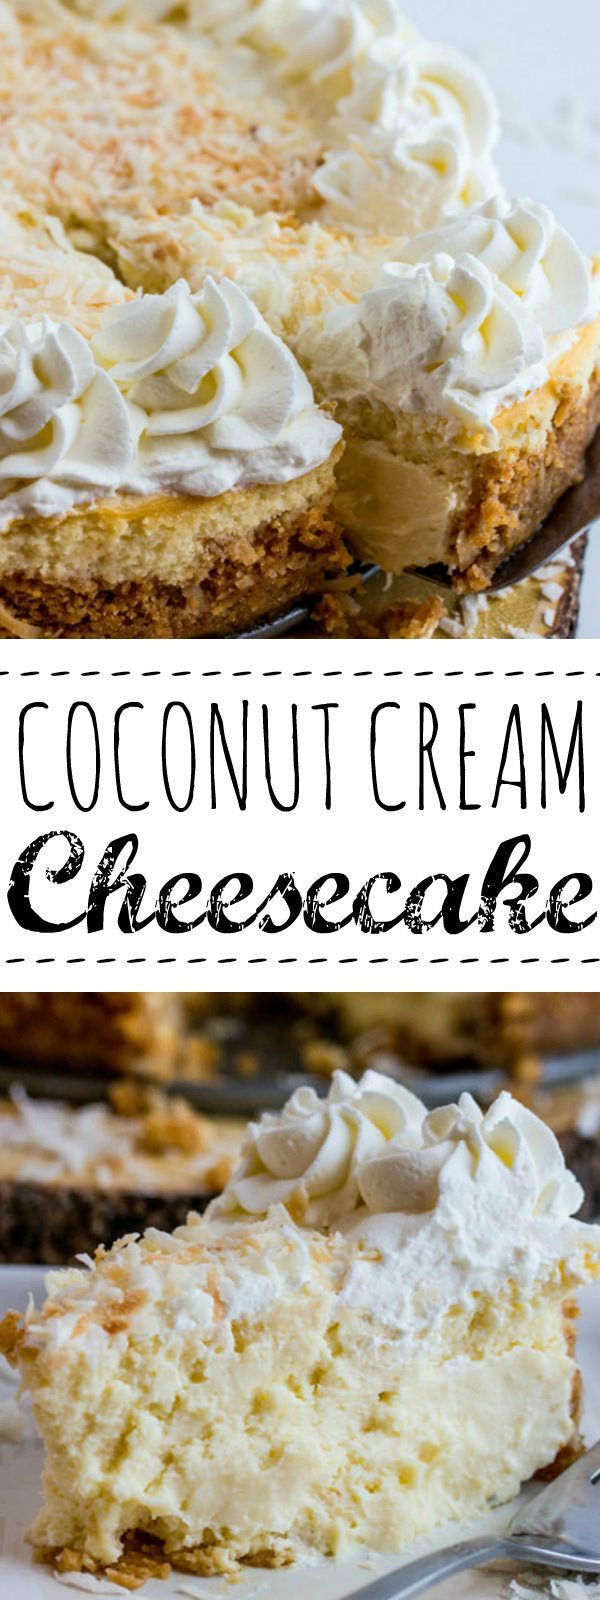 Creamy, rich and delicious this Coconut Cream Cheesecake takes the traditional pie and gives it a fun twist!